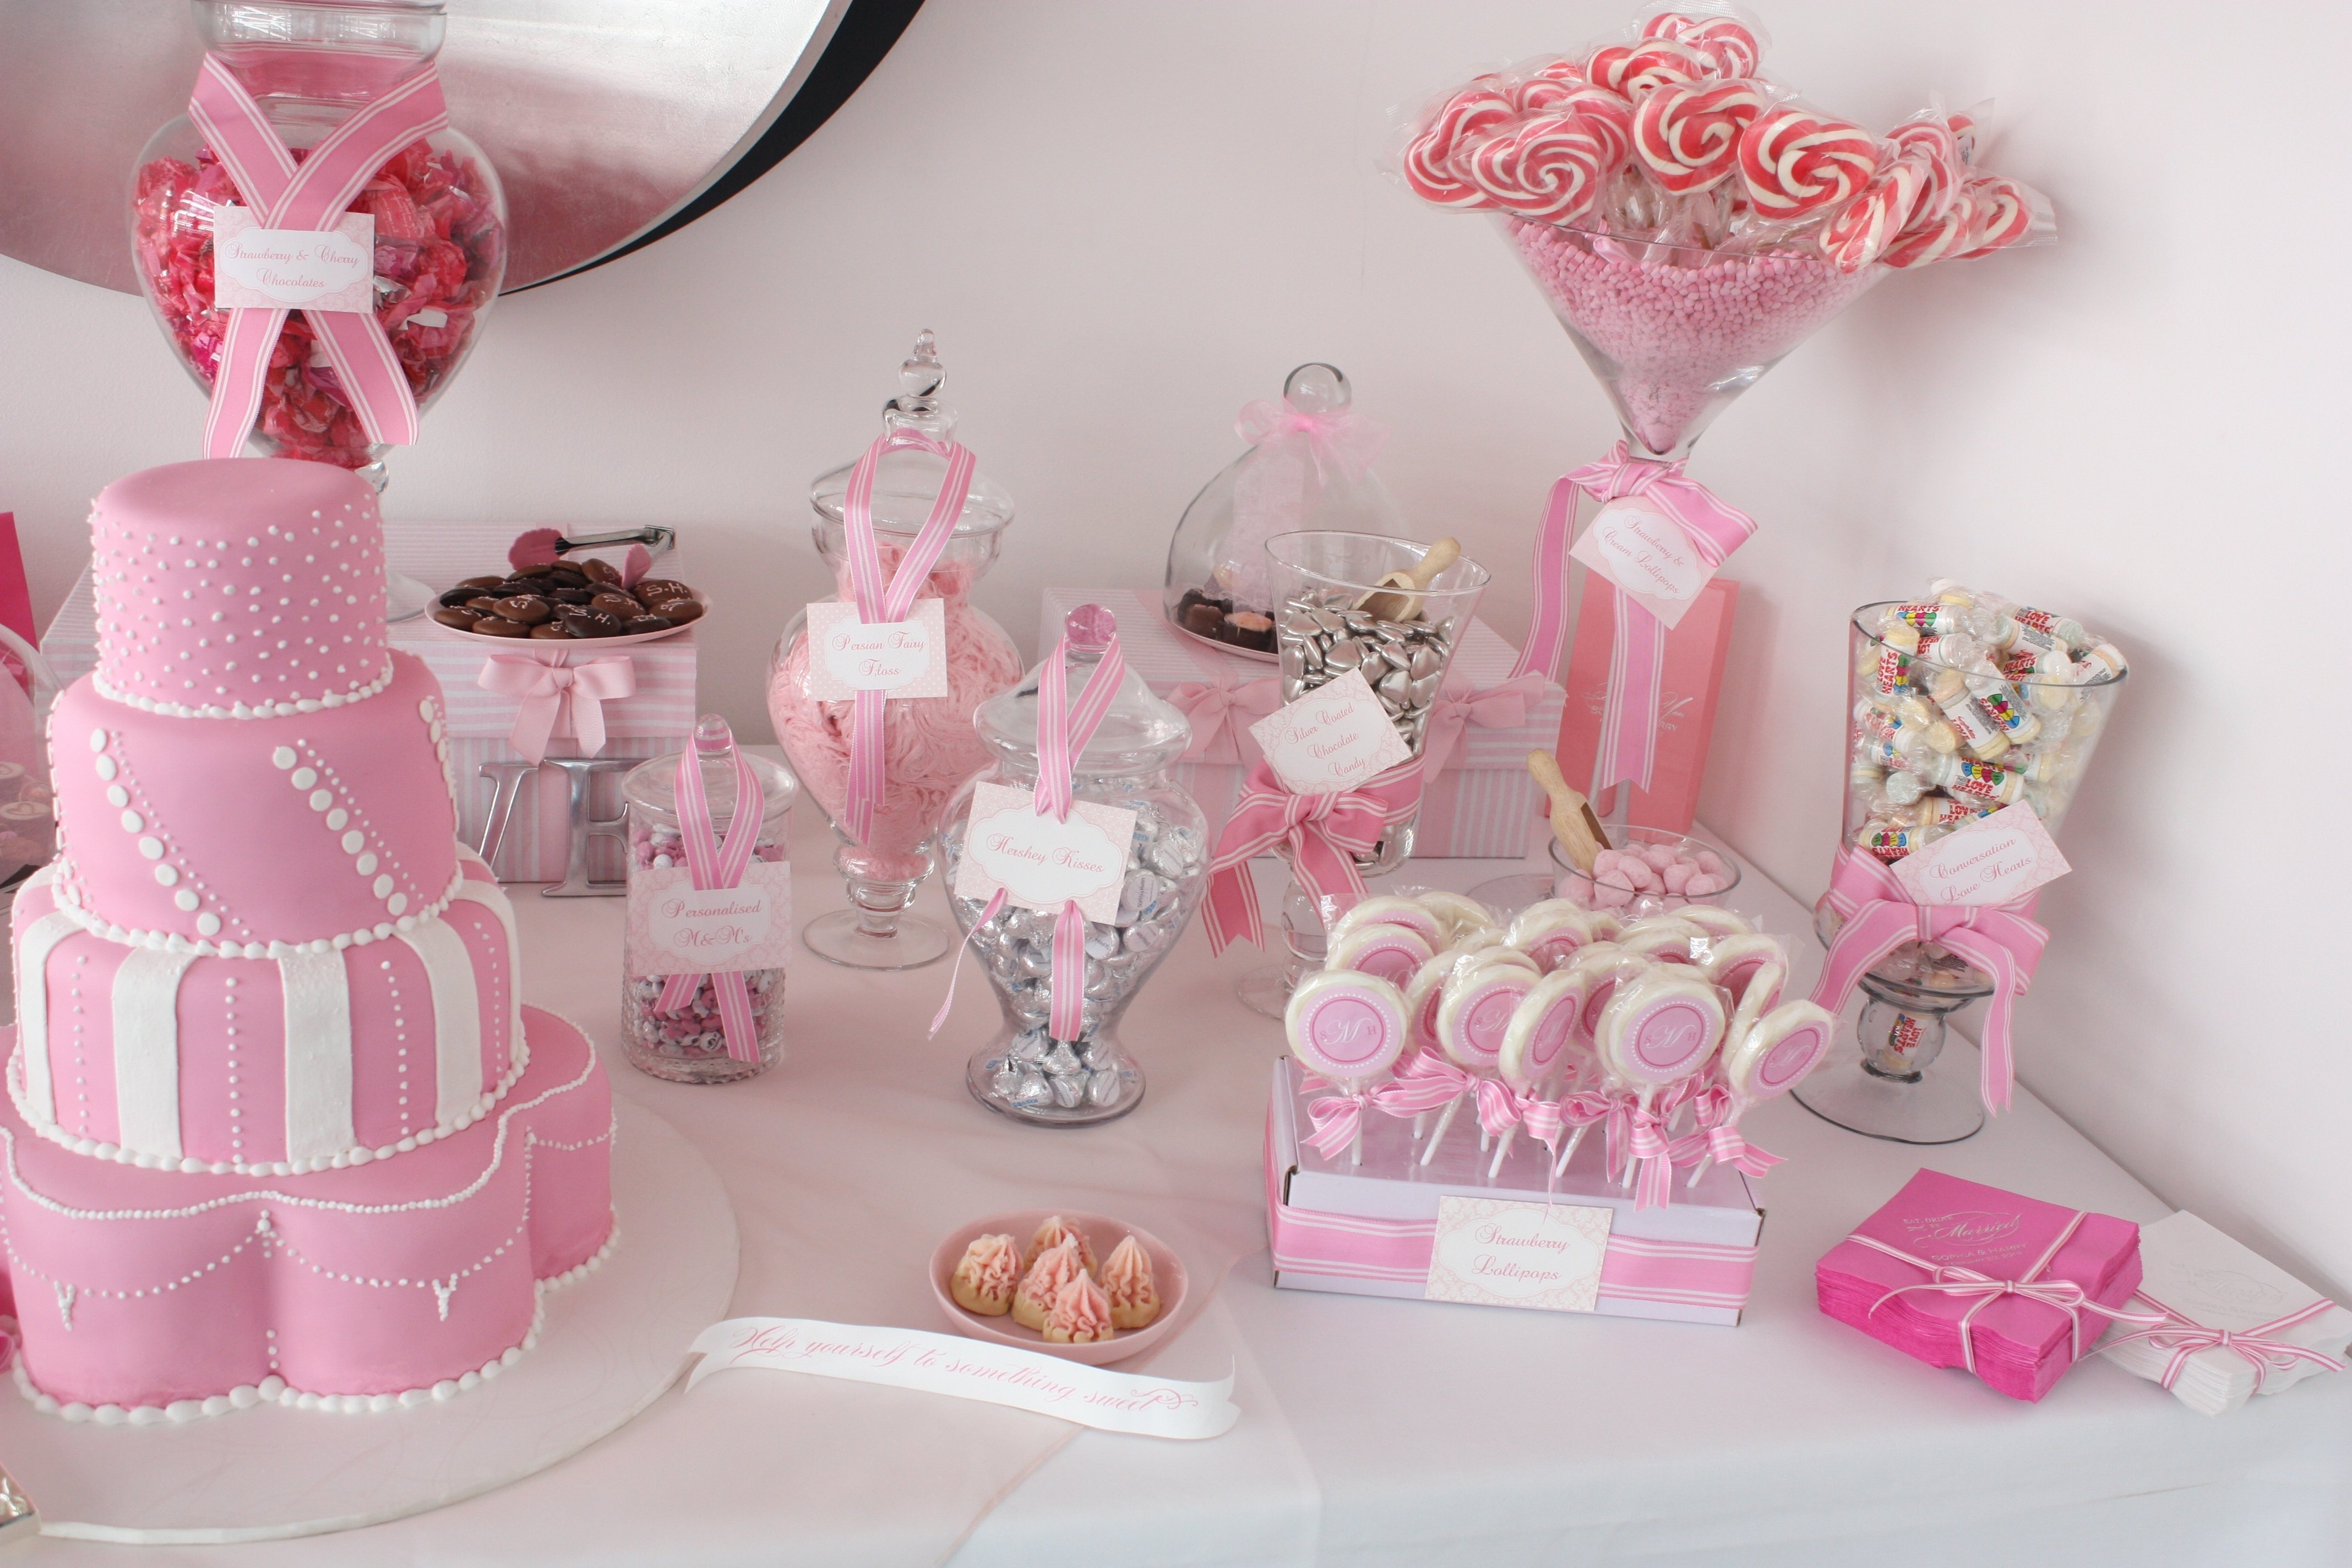 10 Unique Candy Buffet Ideas For Baby Shower candy buffet ideas for baby shower omega center ideas for baby 2020